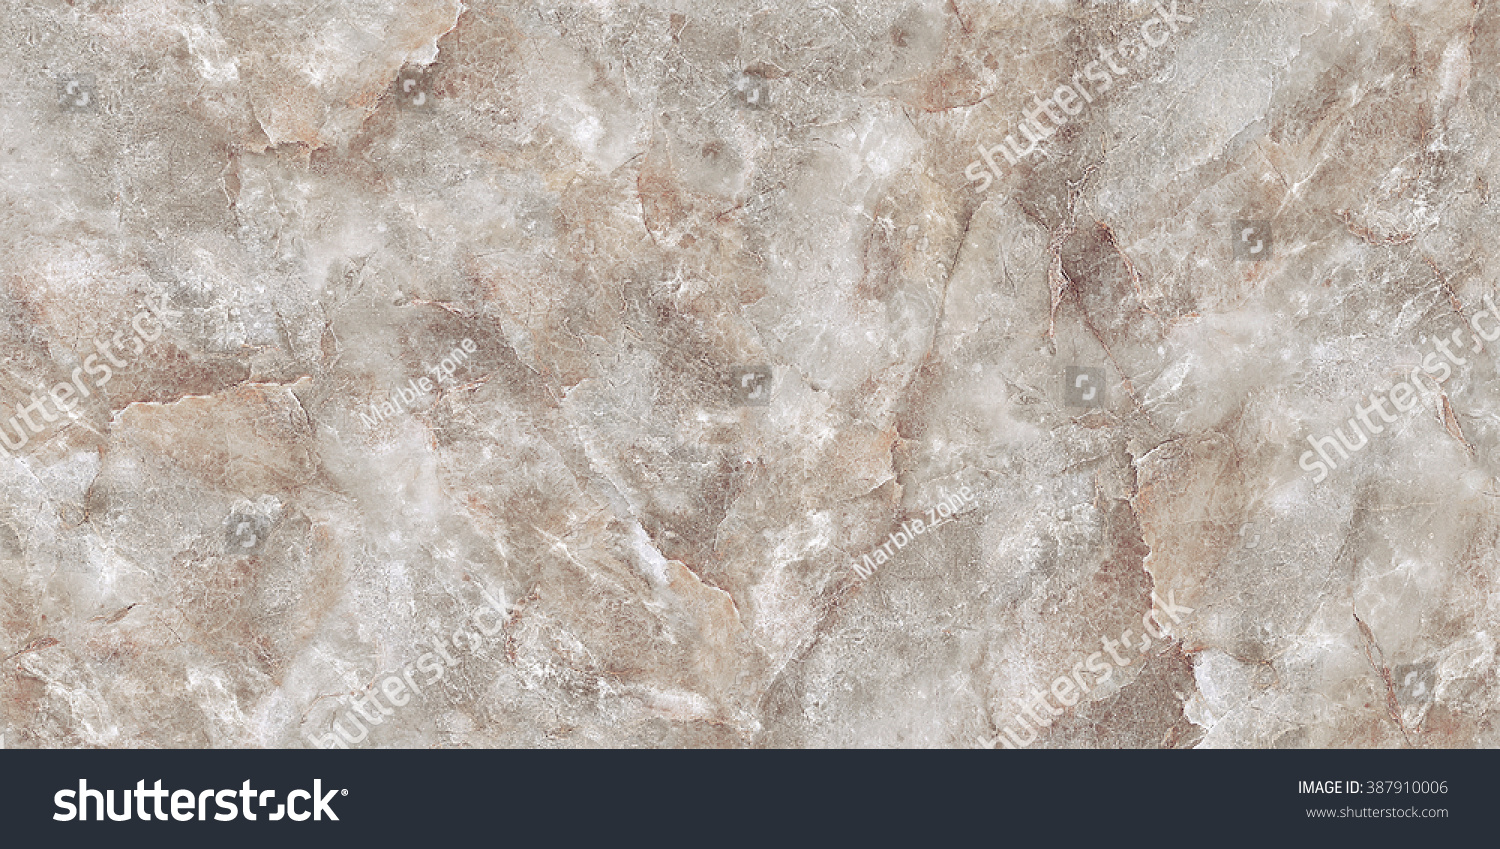 Bright smooth white marble texture background for decorative wall - Marble Texture Background Stock Photo 387910006 Shutterstock